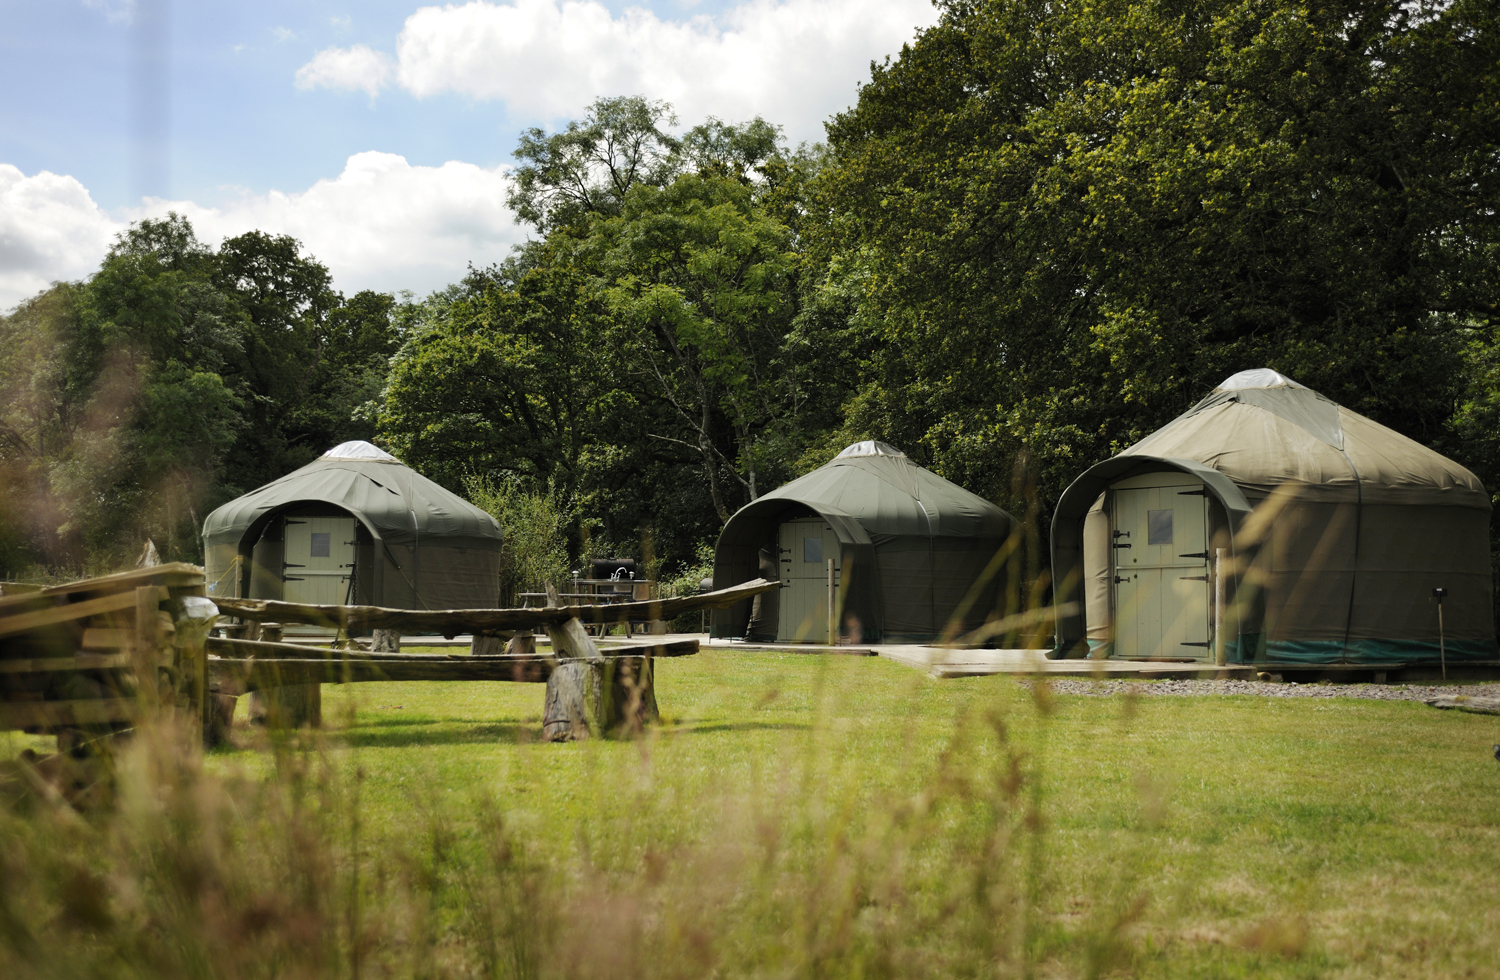 Brickles Yurts at Stock Gaylard for glamping holidays in Dorset